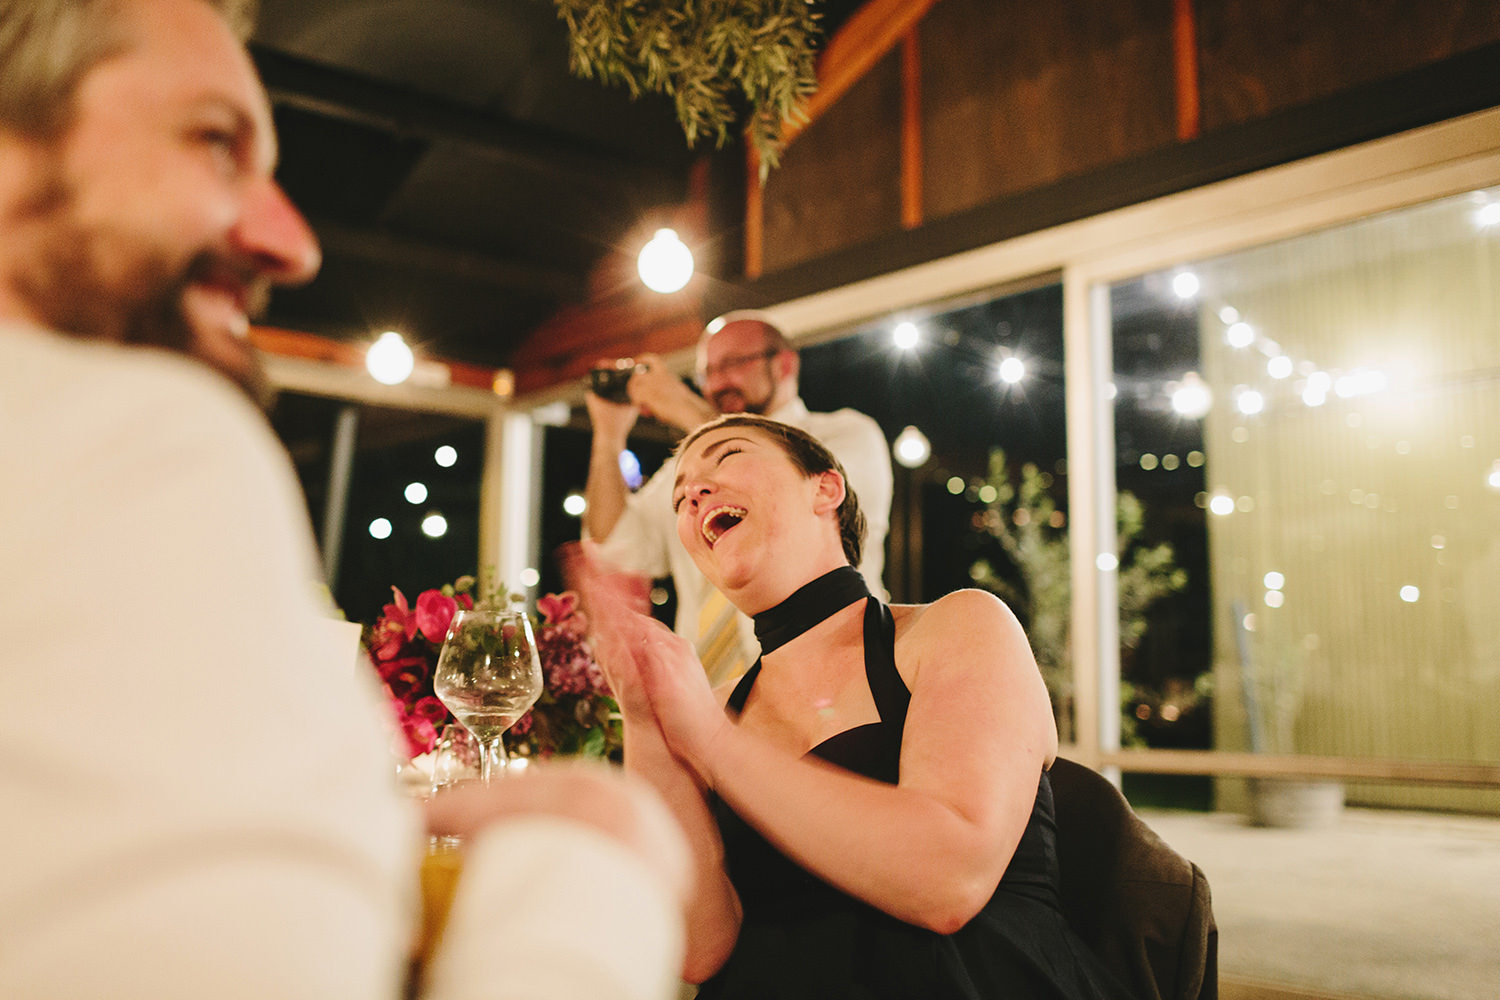 Melbourne_Winery_Wedding_Chris_Merrily164.JPG